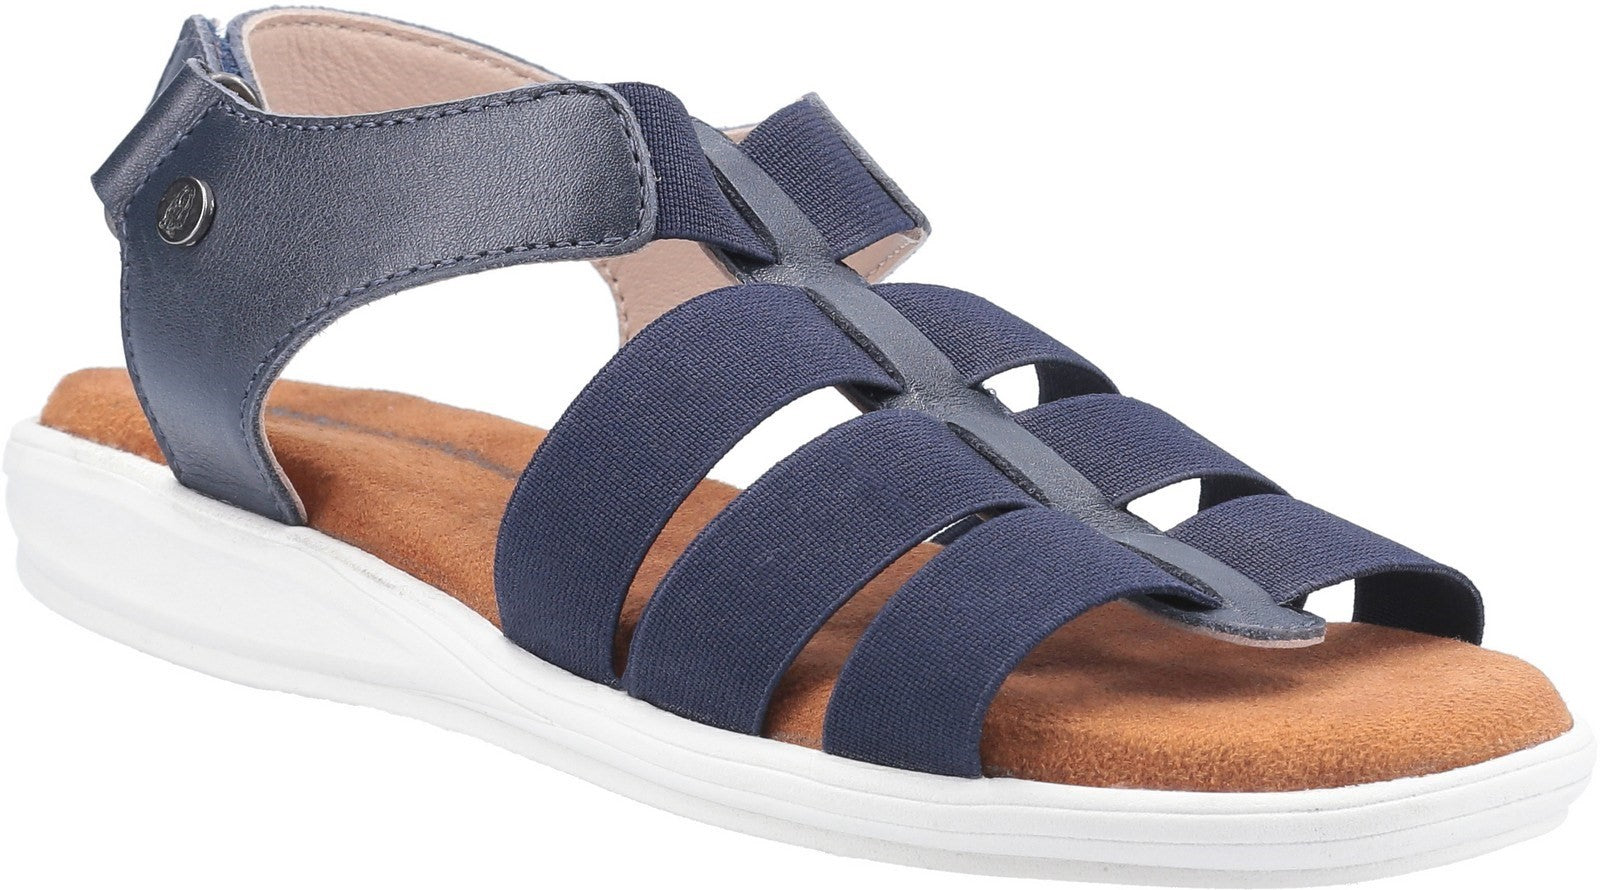 Hush Puppies Women's Hailey Gladiator Sandal Various Colours 30222